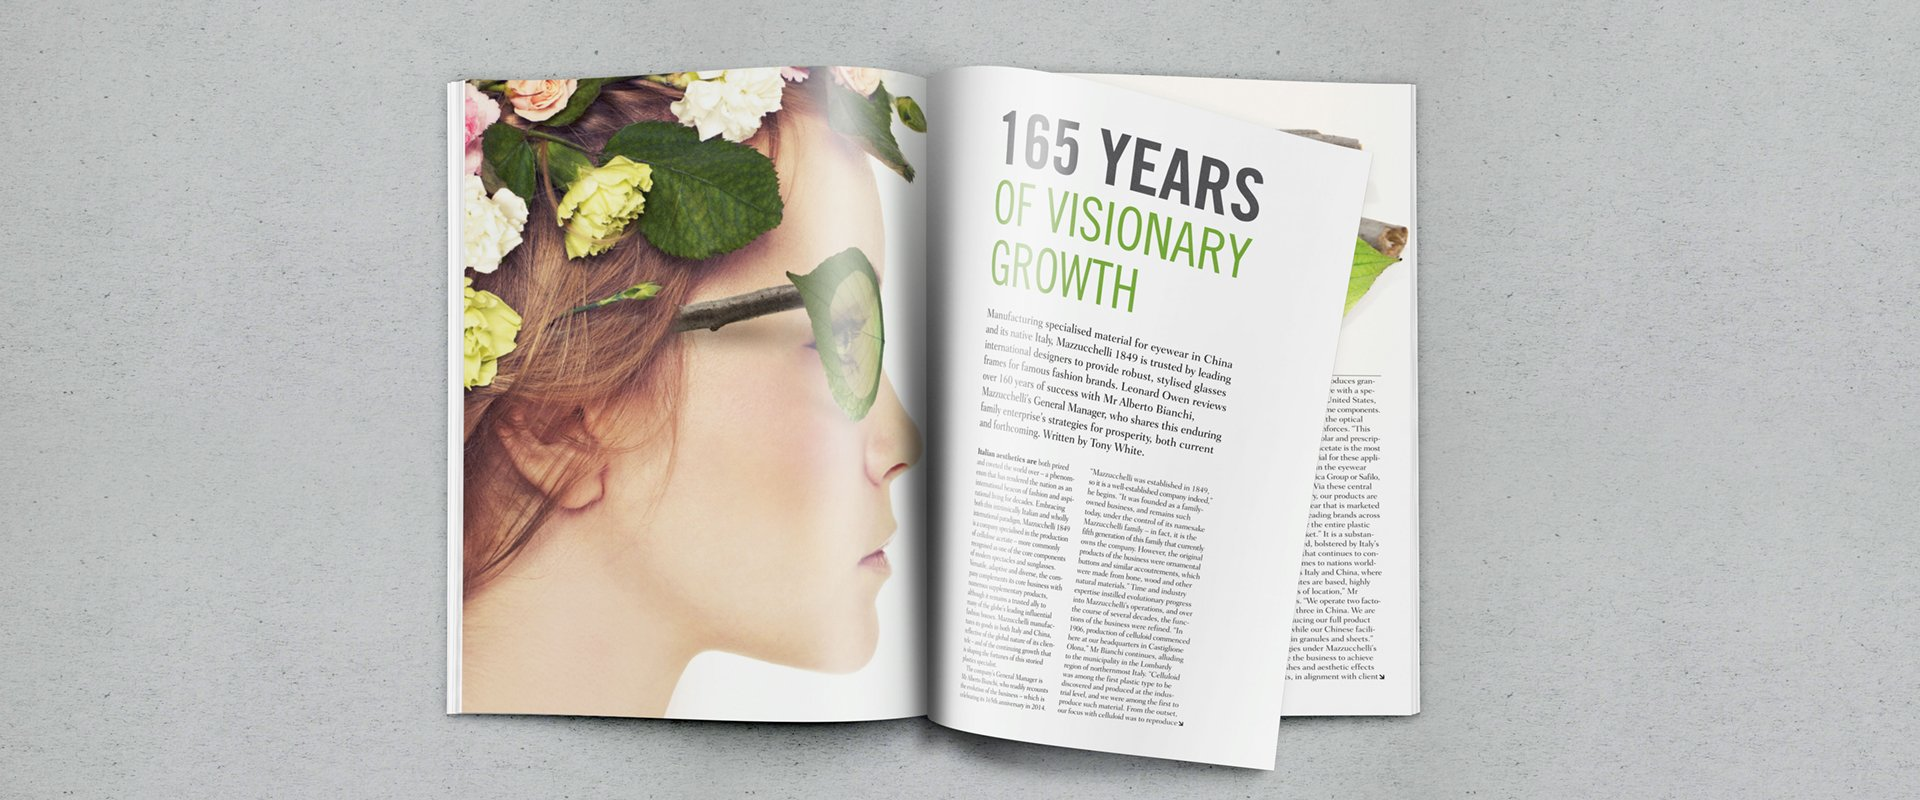 Publication layout design for an eyewear company showing a woman wearing 'natural' glasses and using clean bold typography.